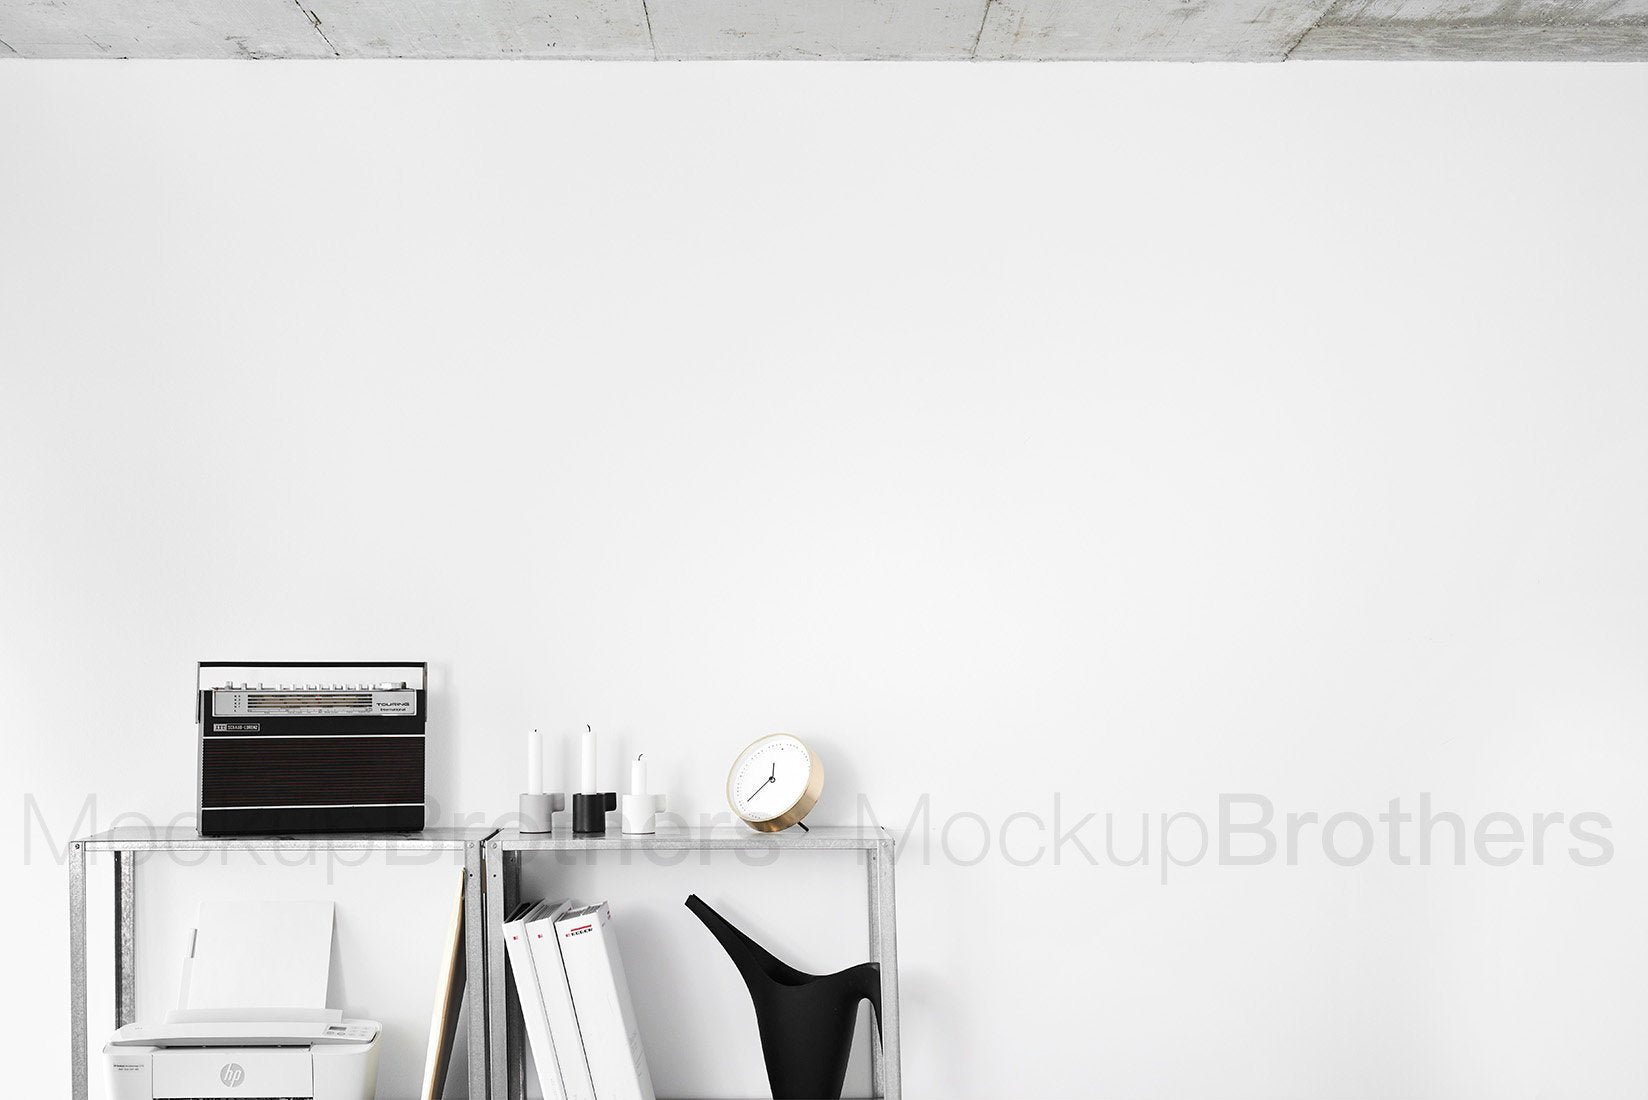 wall art mockup for paintings and posters by Mock up Brothers